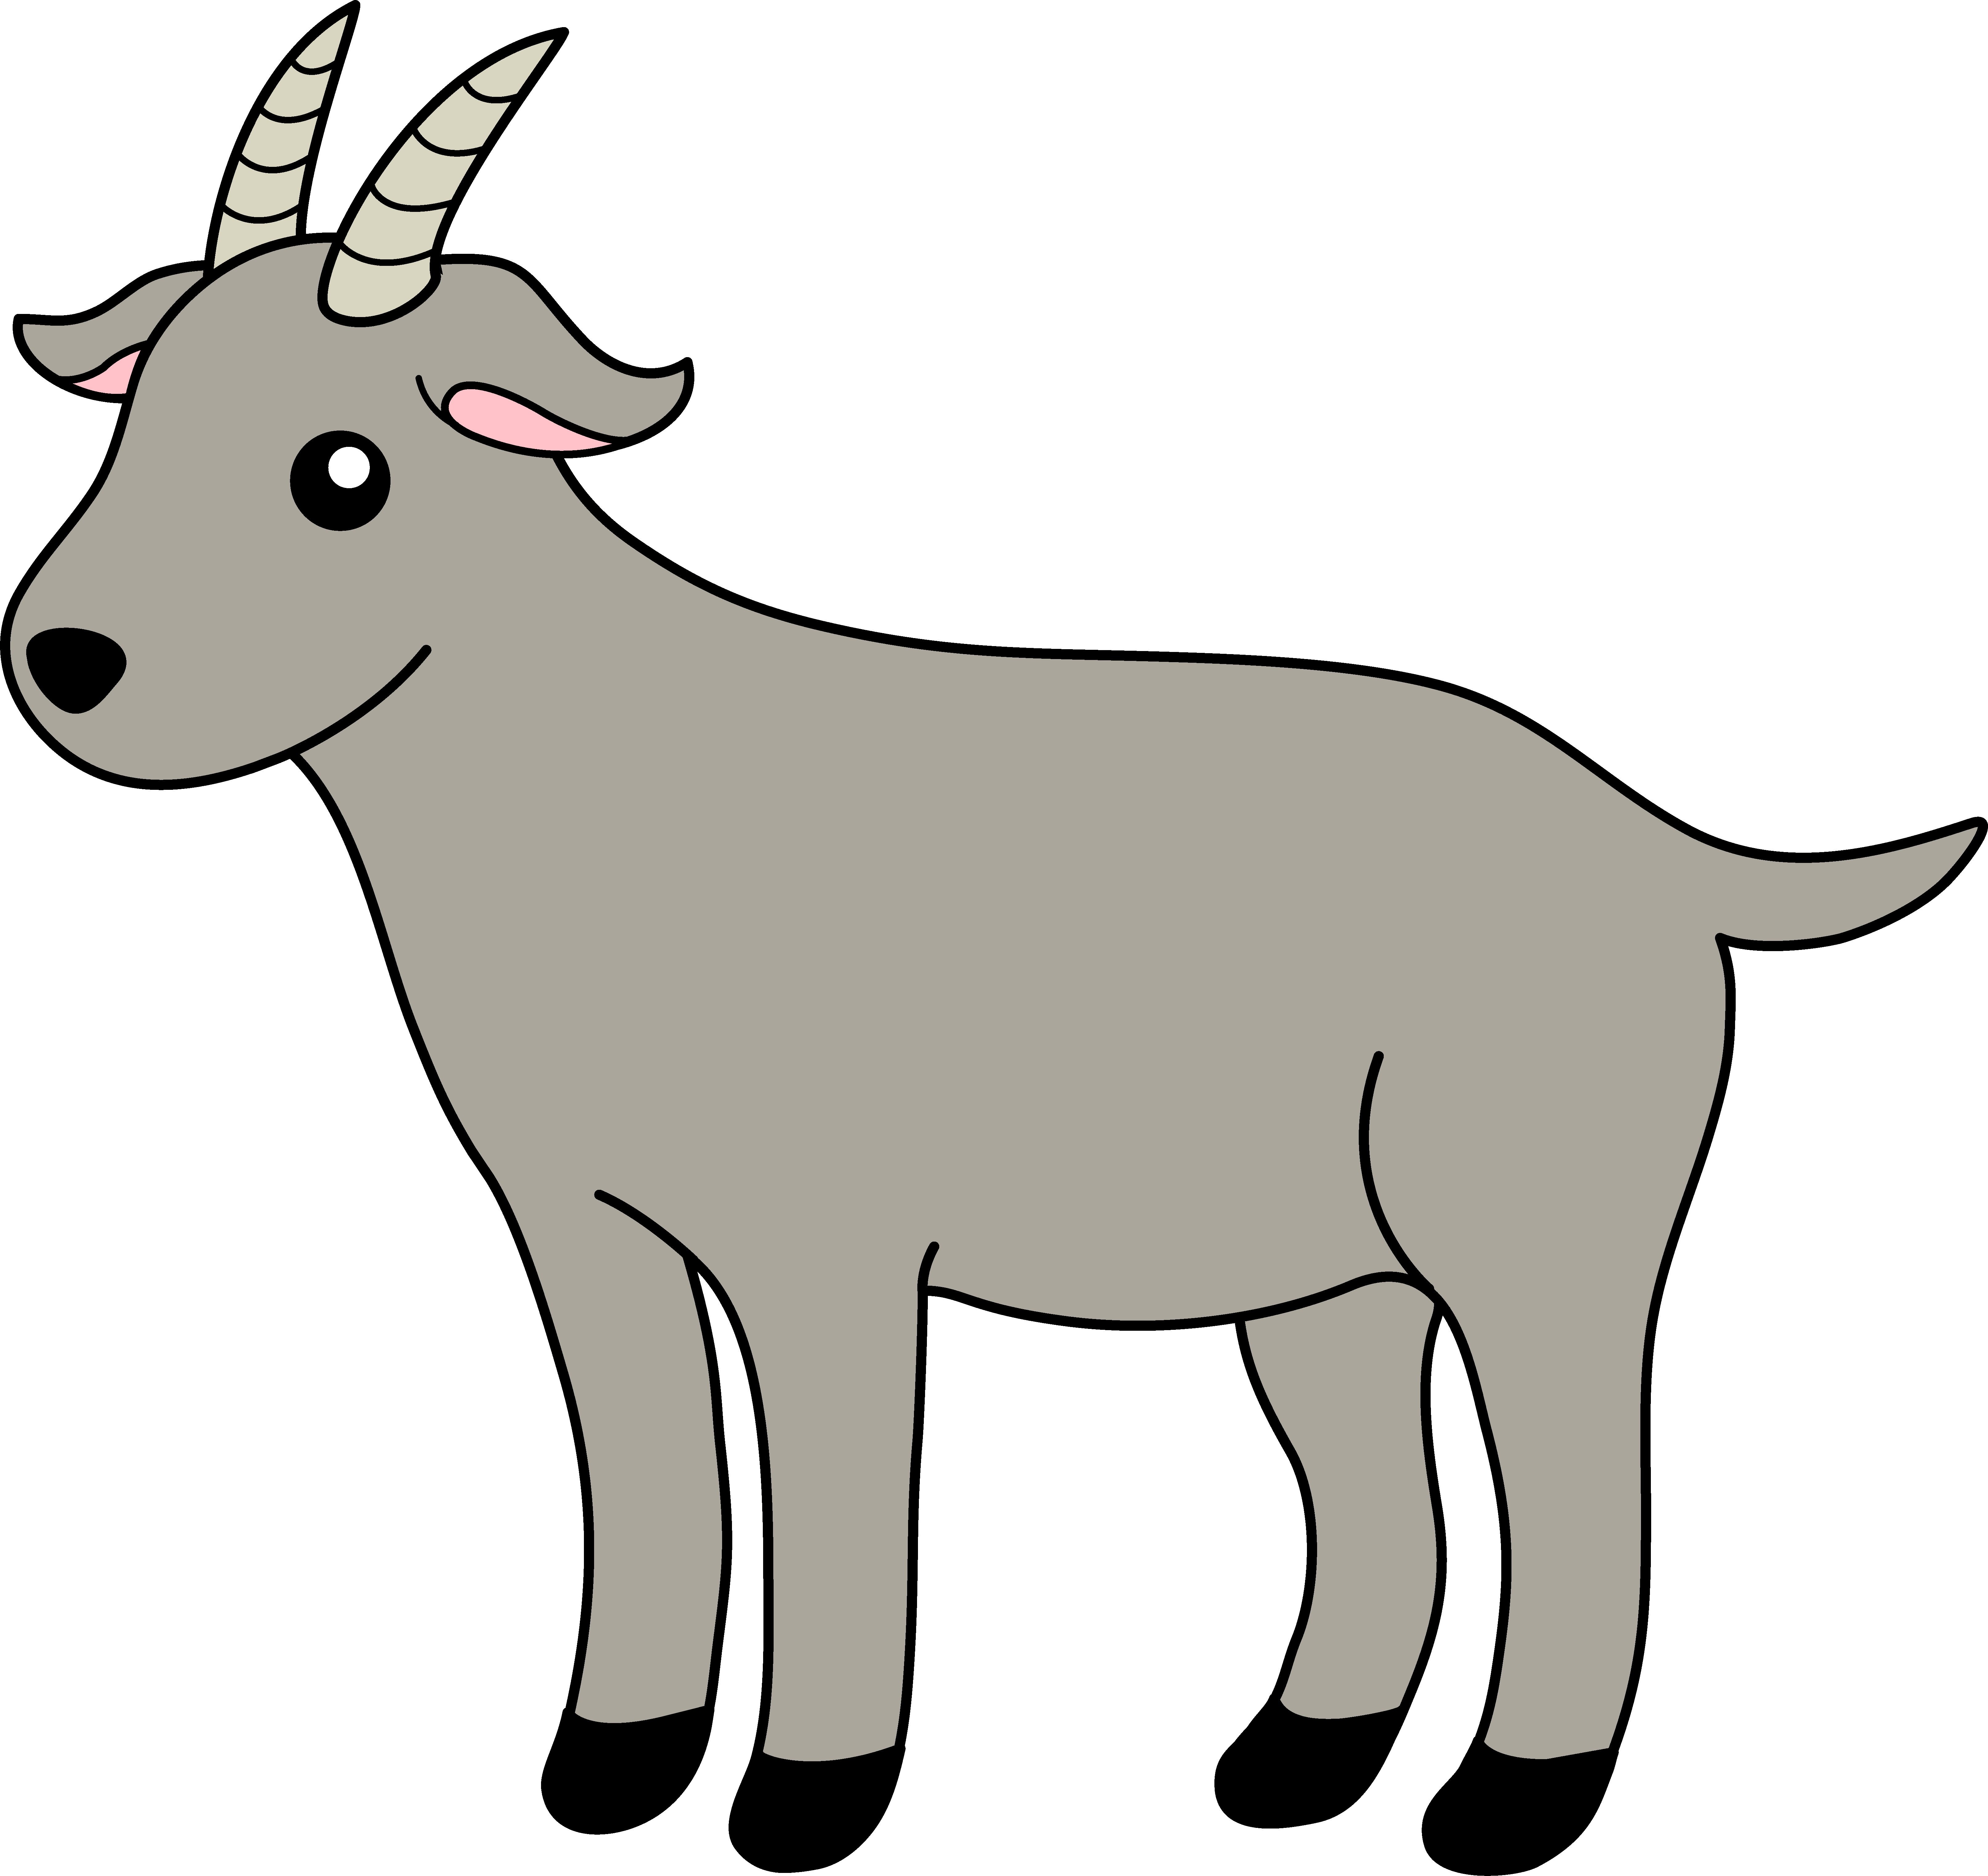 Kid Goat Clipart | Clipart Panda - Free Clipart Images for Kid Goat Clipart  146hul